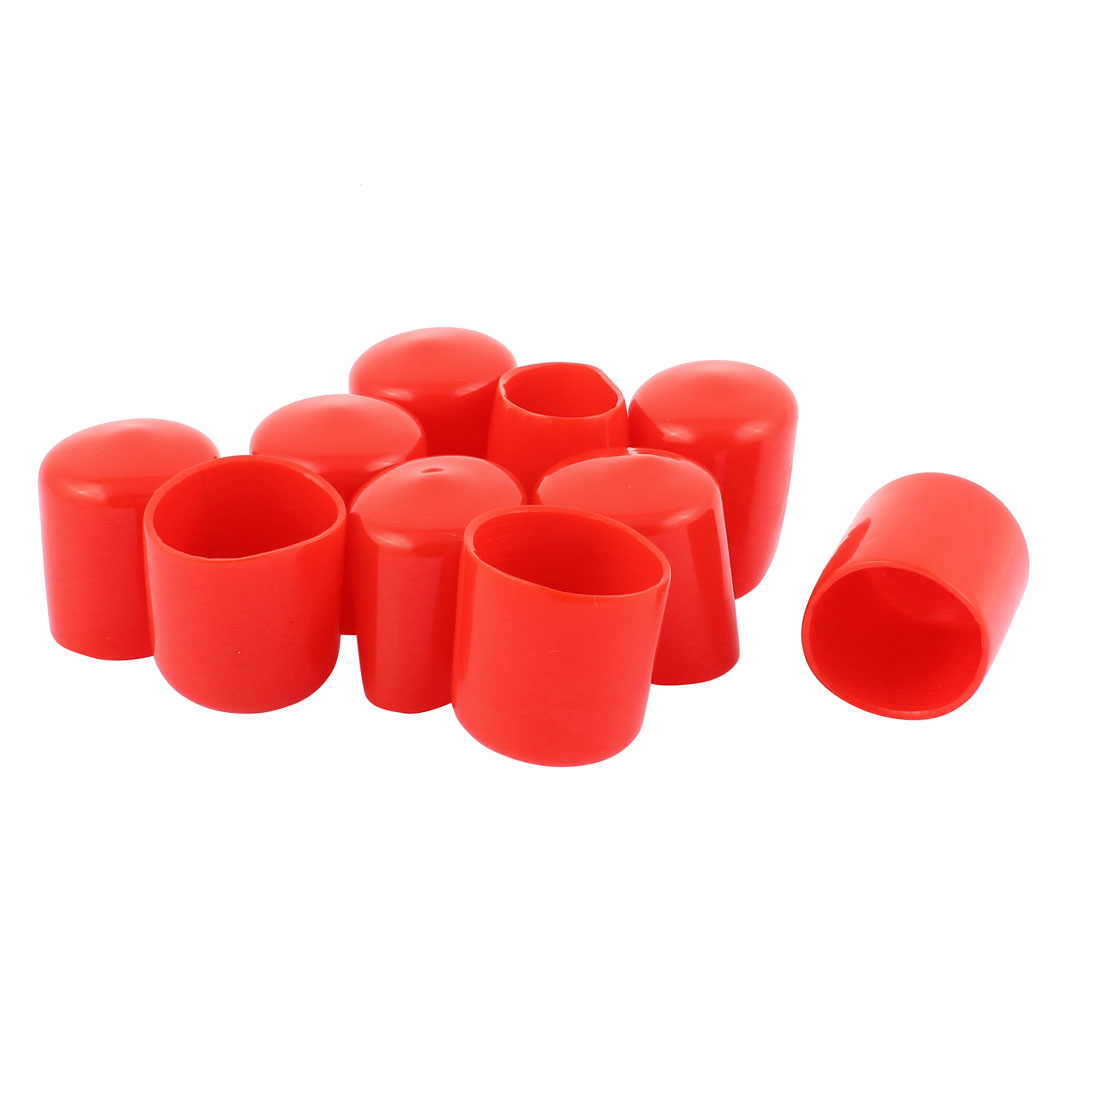 10pcs 24mm Inner Dia Vinyl End Cap Wire Cable Tube Cover Protector